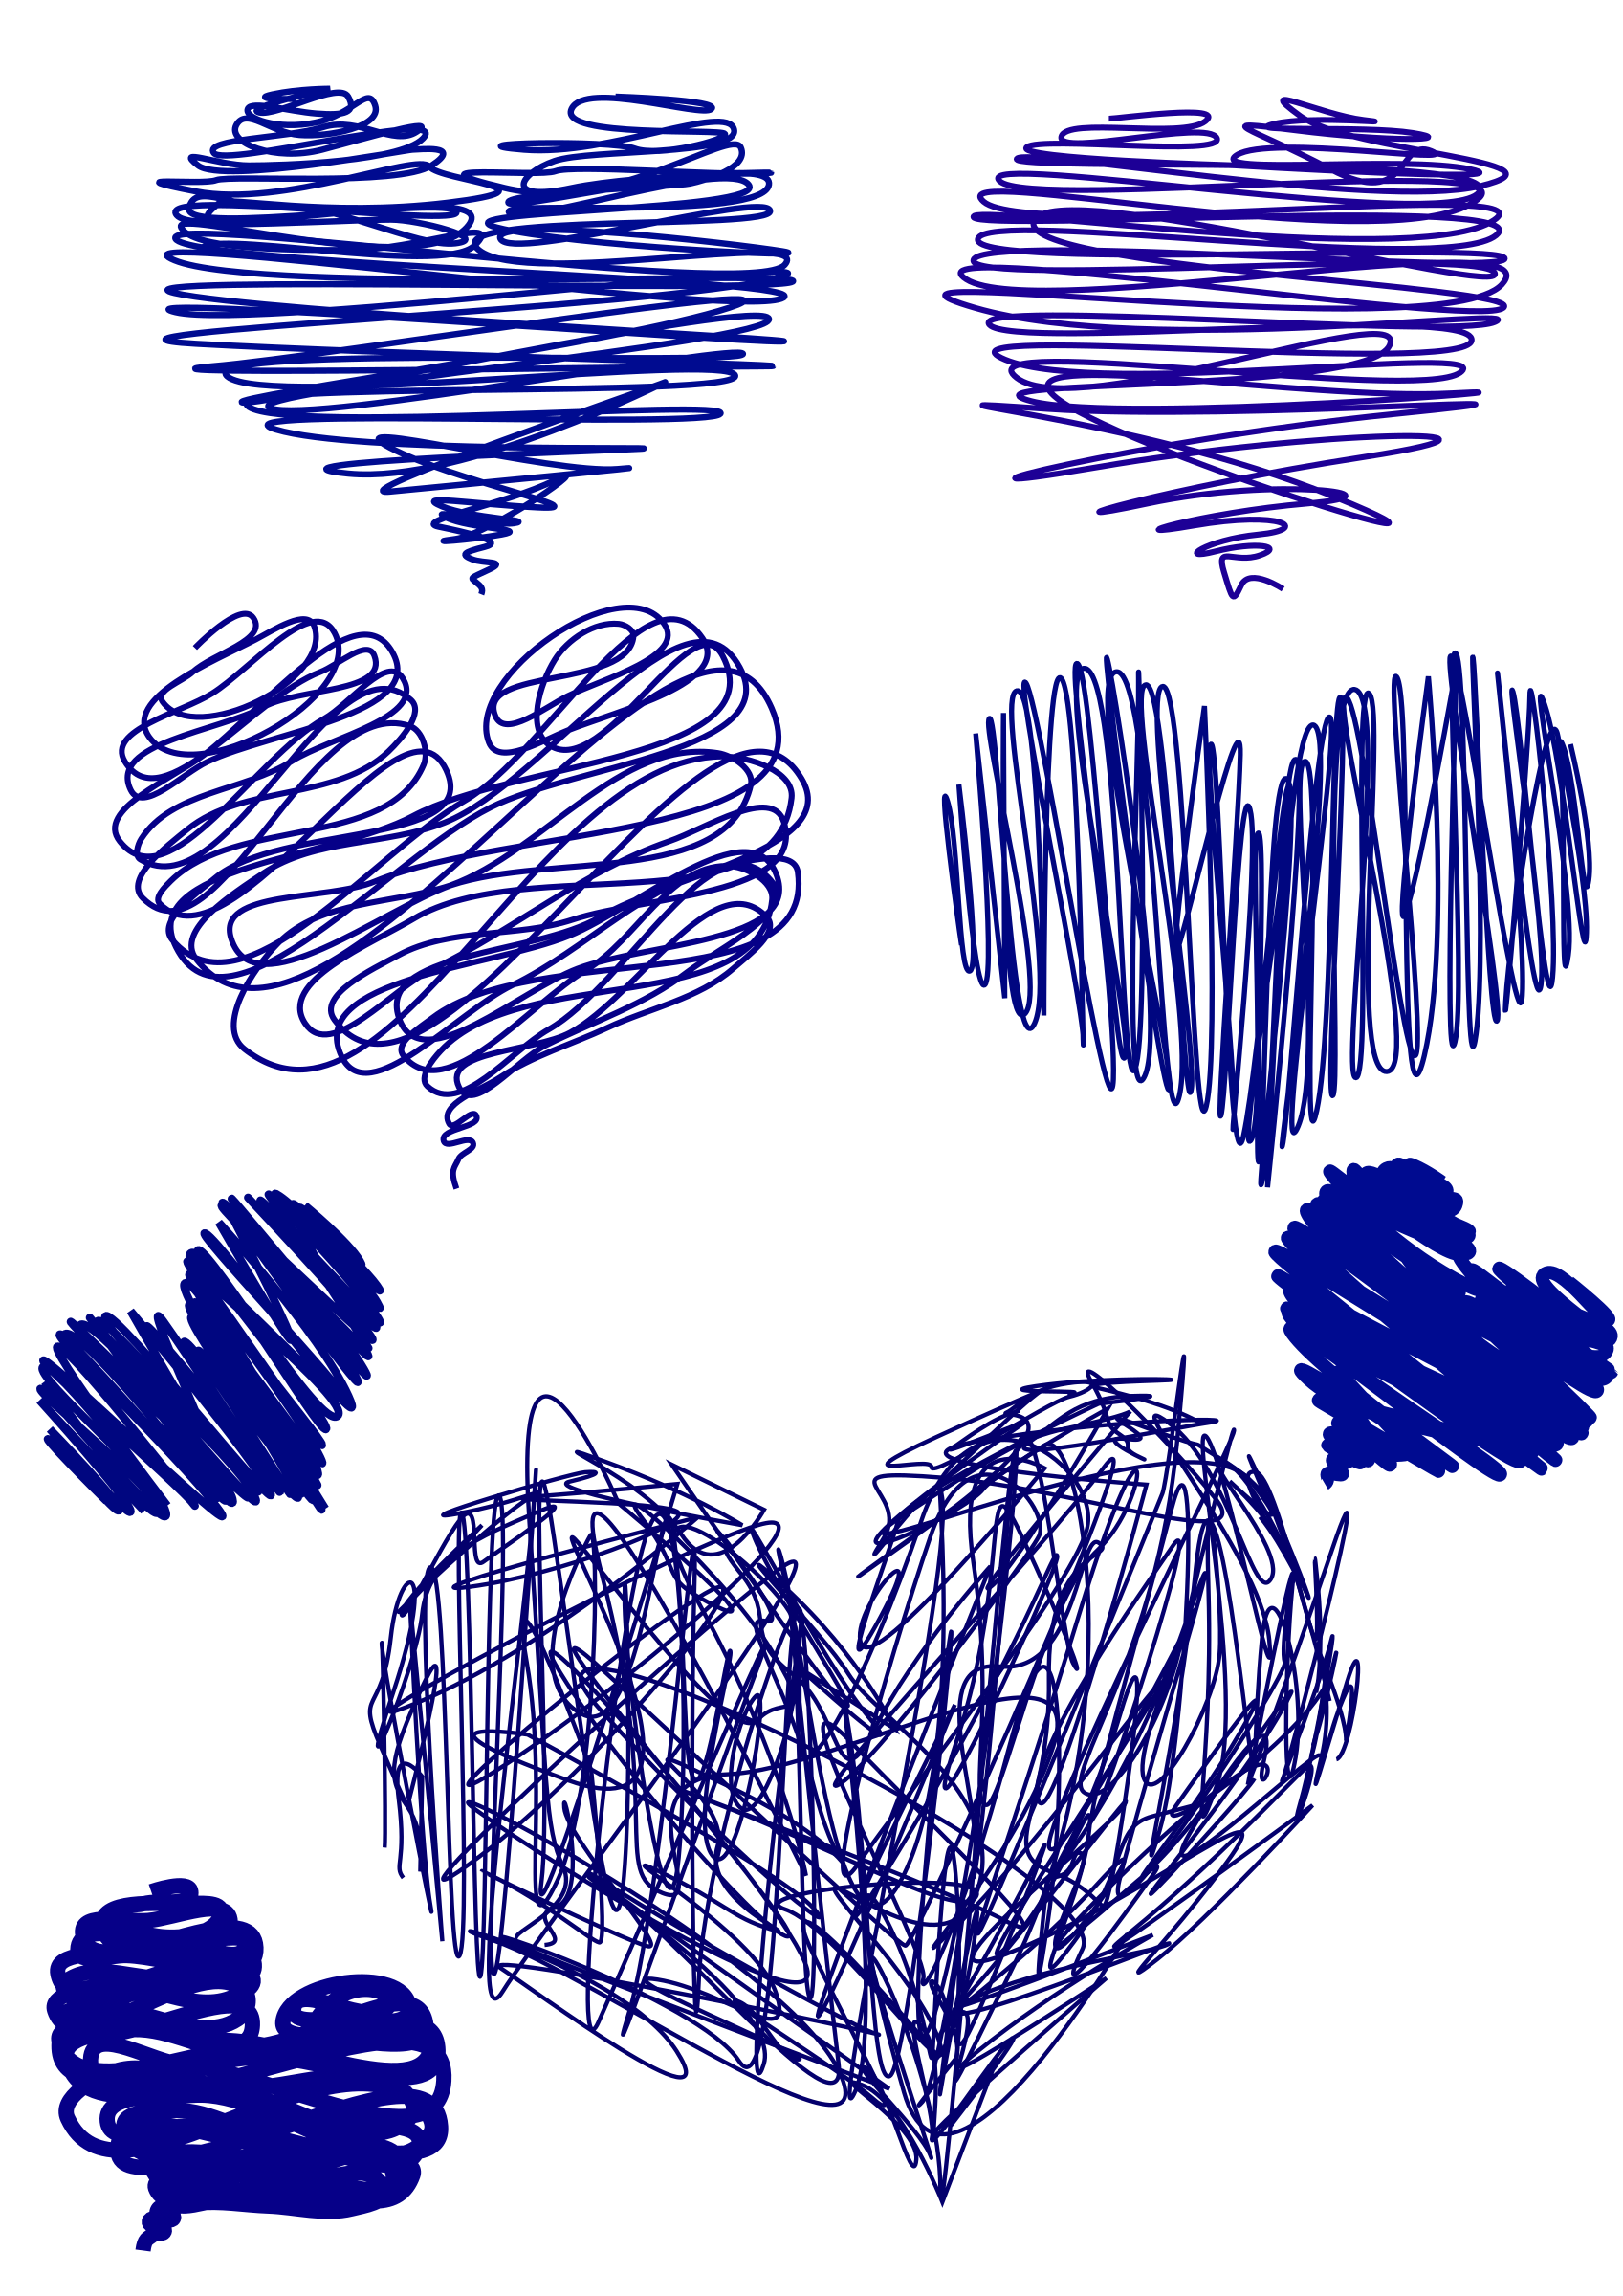 Blue big image png. Heart clipart hand drawn